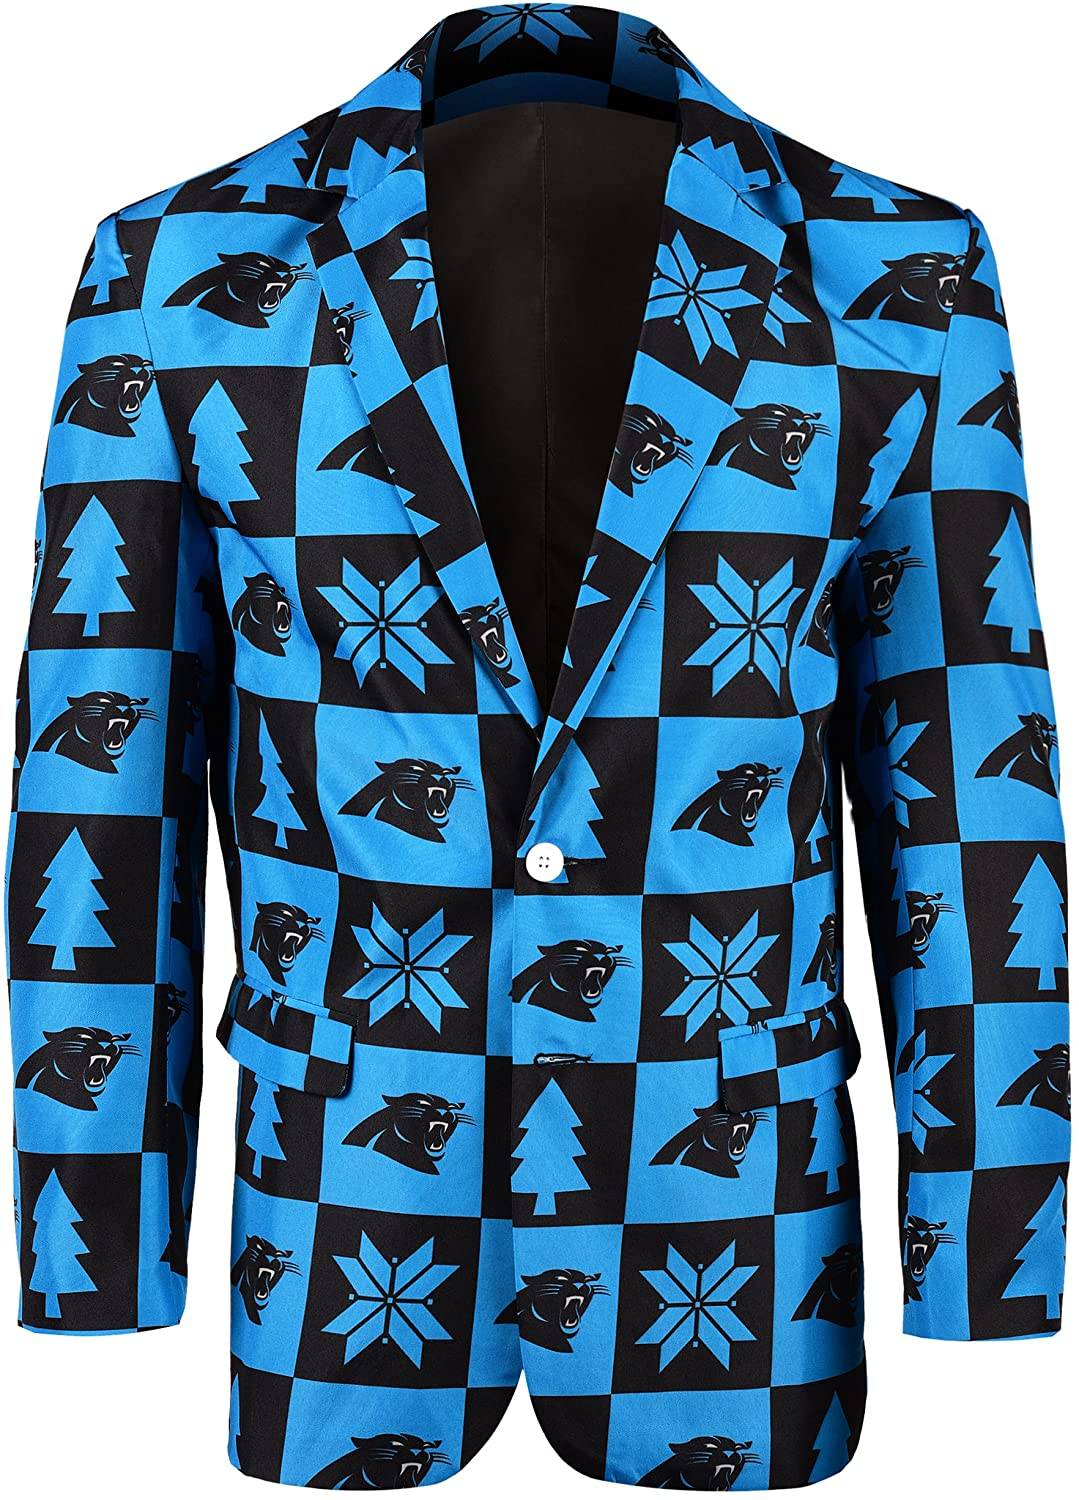 Carolina Panthers Patches Ugly Business Jacket - Mens Size 46